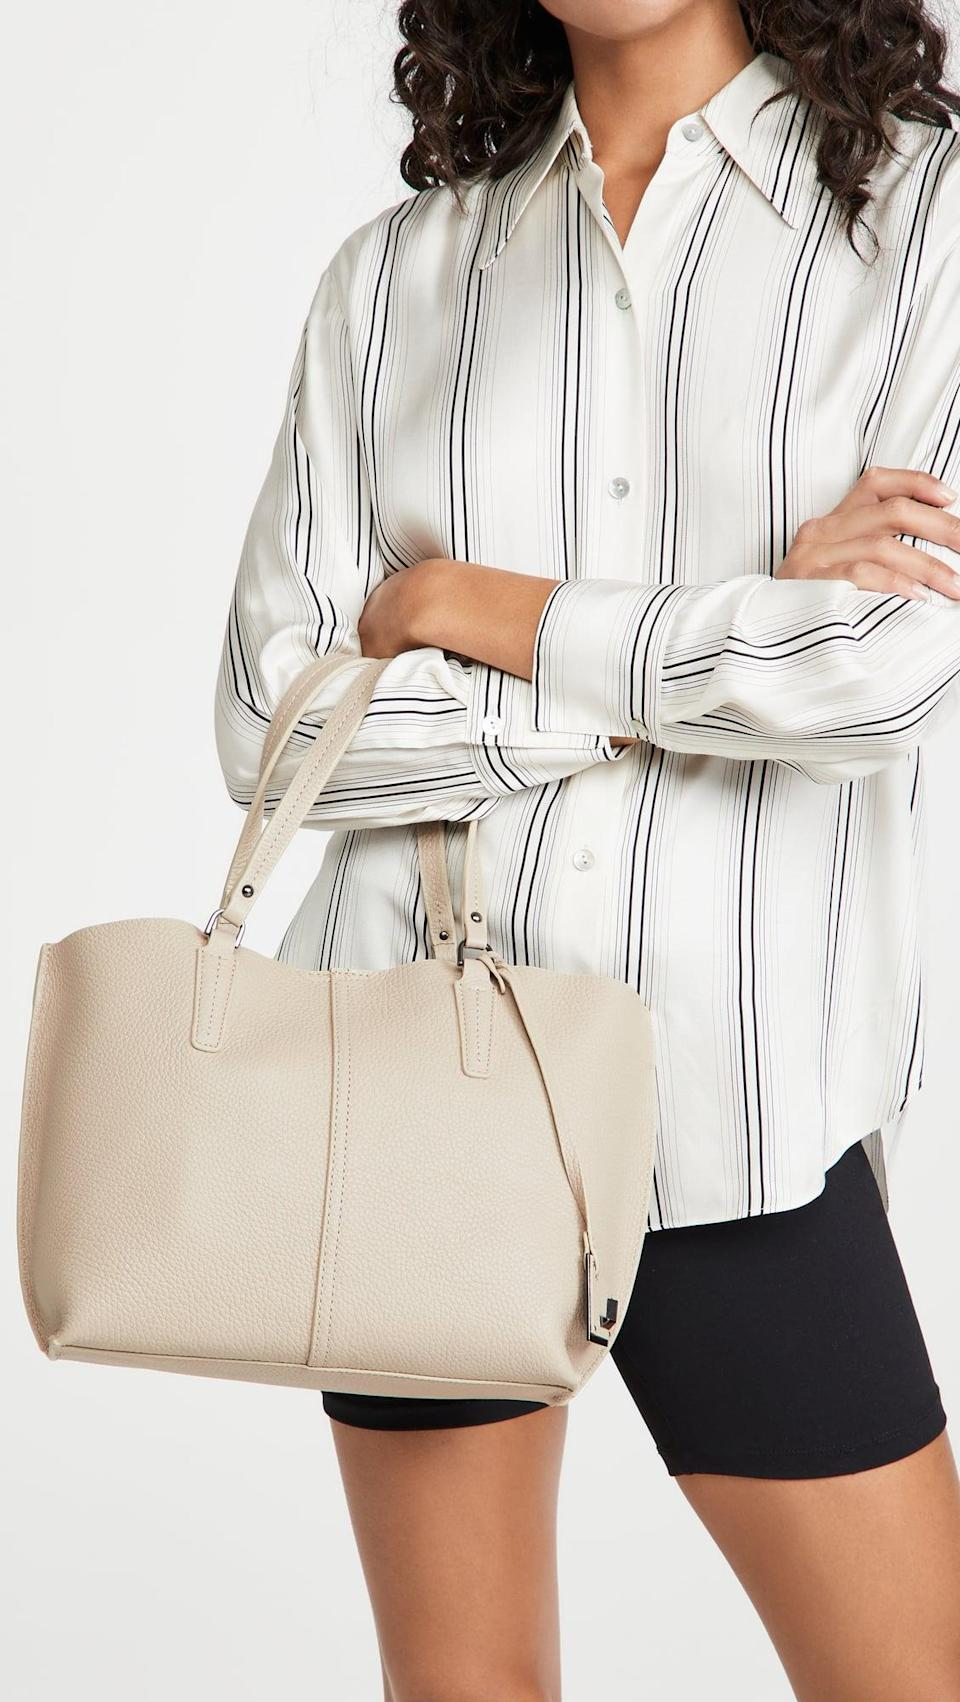 <p>The size of this <span>Botkier Hudson Bite Size Tote</span> ($228) is great if you want something smaller.</p>